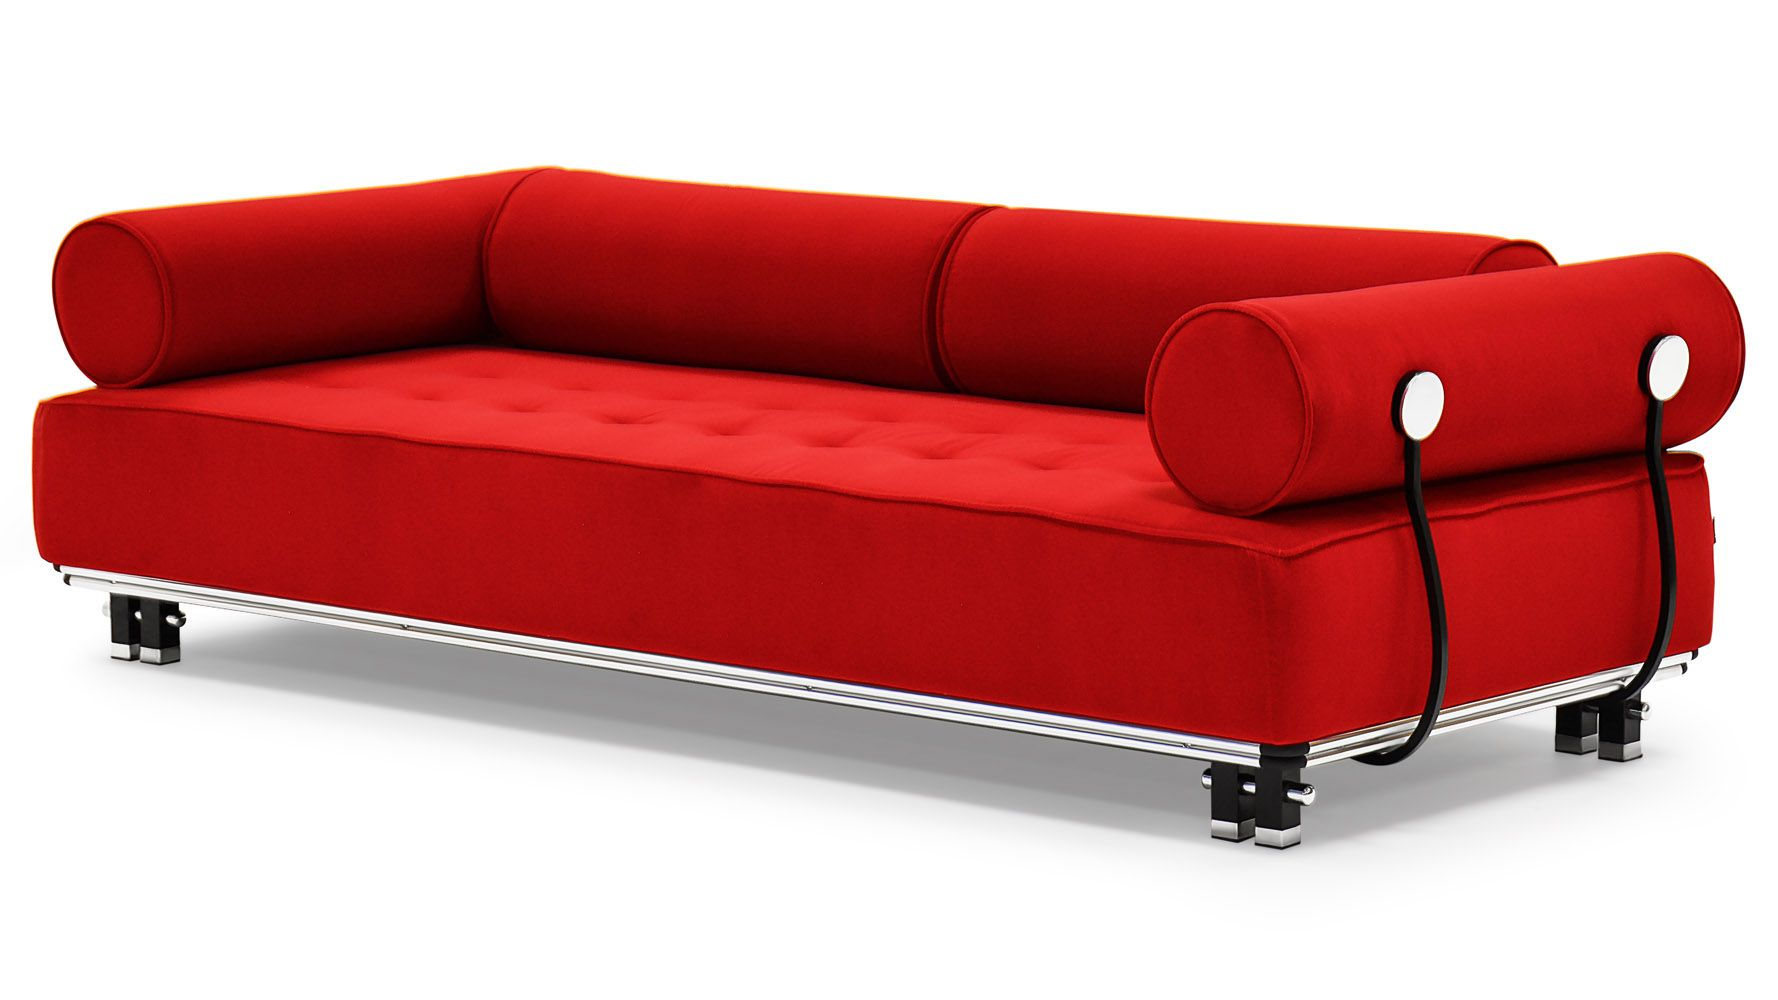 Joybird Briar Mid Century Modern Red Sofa 1 279 Liked On Polyvore Featuring Home Fur Modern Red Sofas Mid Century Style Furniture Mid Century Style Sofas